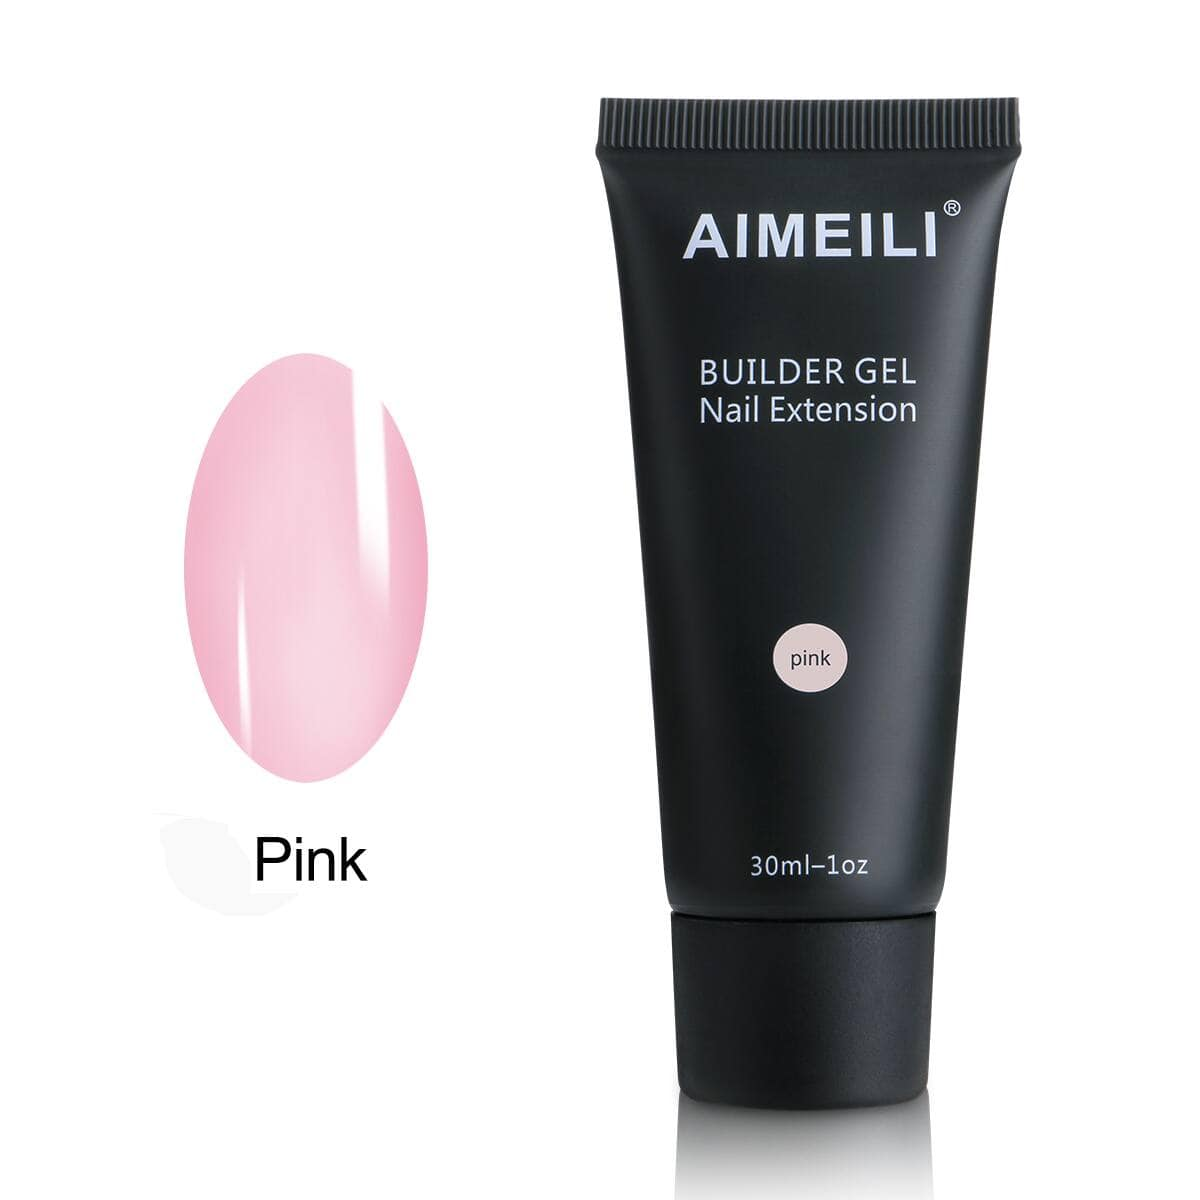 AIMEILI Pink Builder Gel 30ml 1oz for - $6 + Free Shipping w/ Amazon Prime or Orders $25+